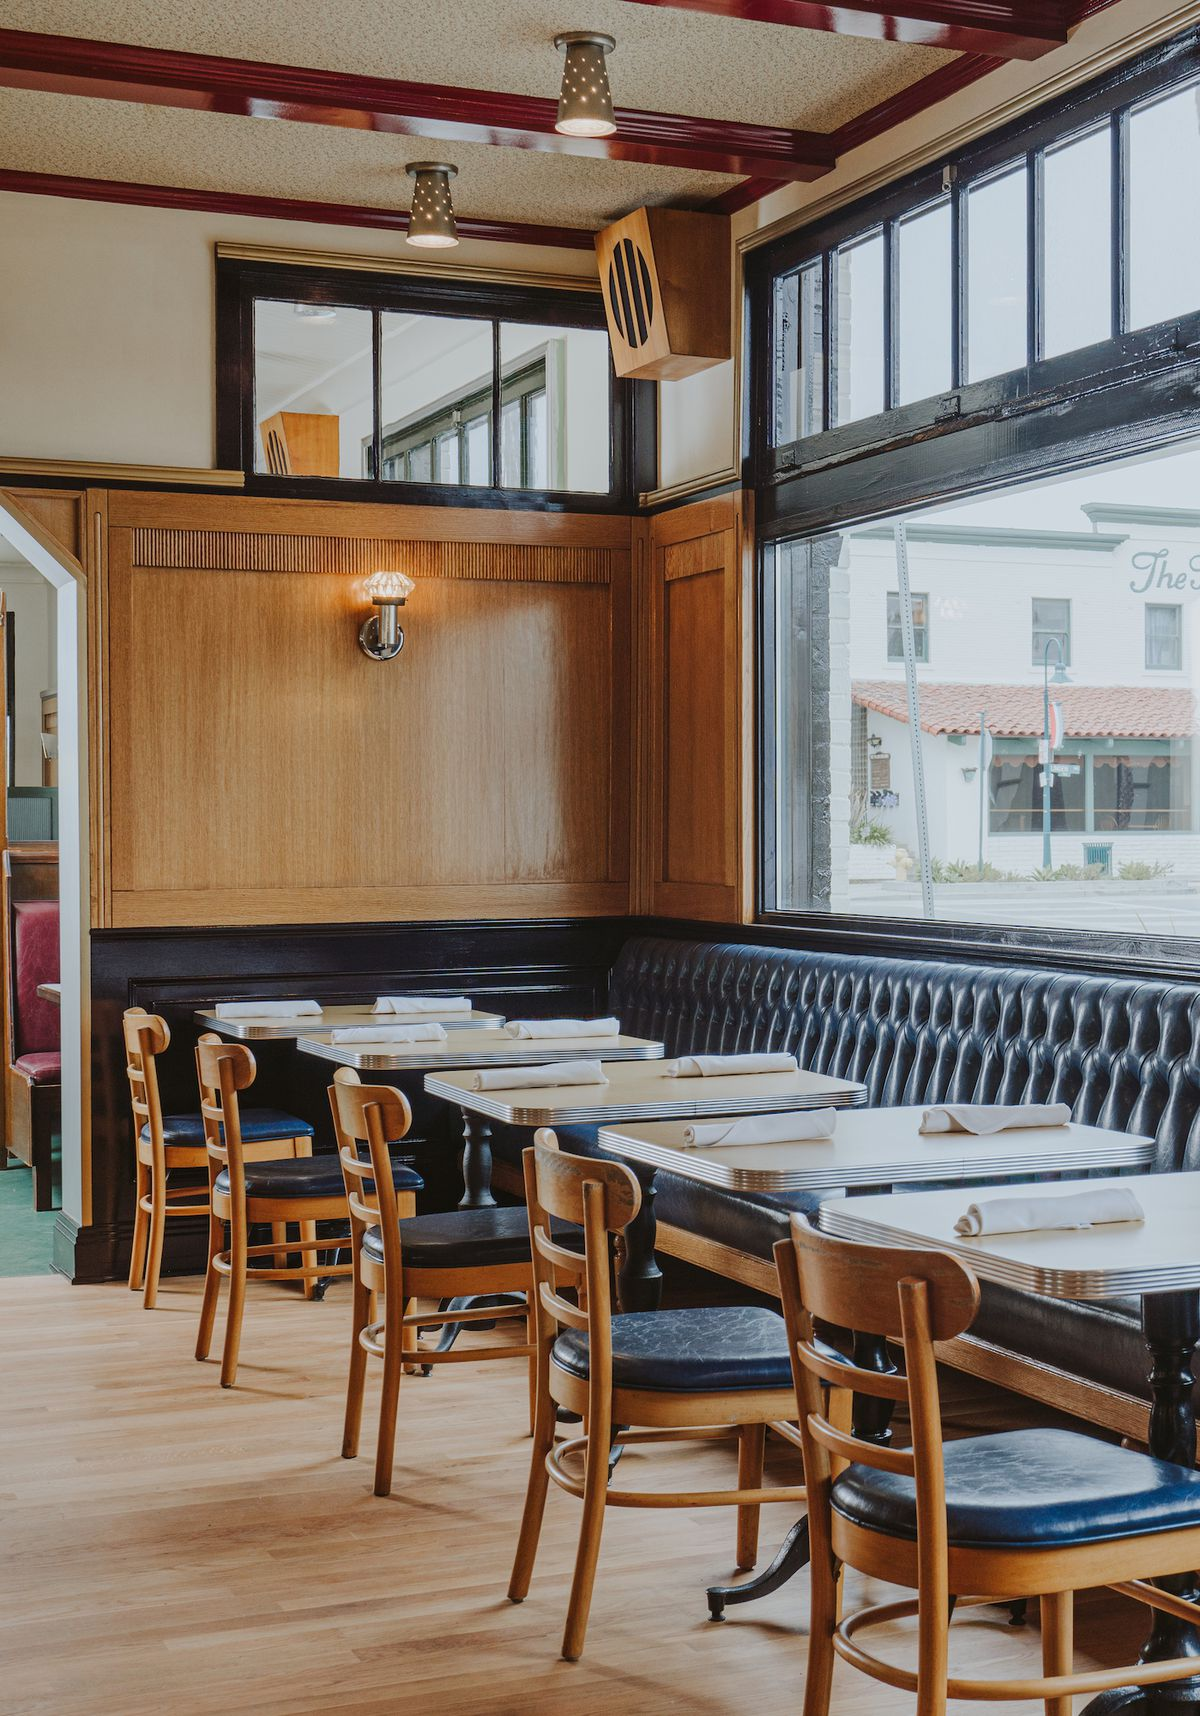 A tall restaurant dining room with a black banquette and lots of wood.